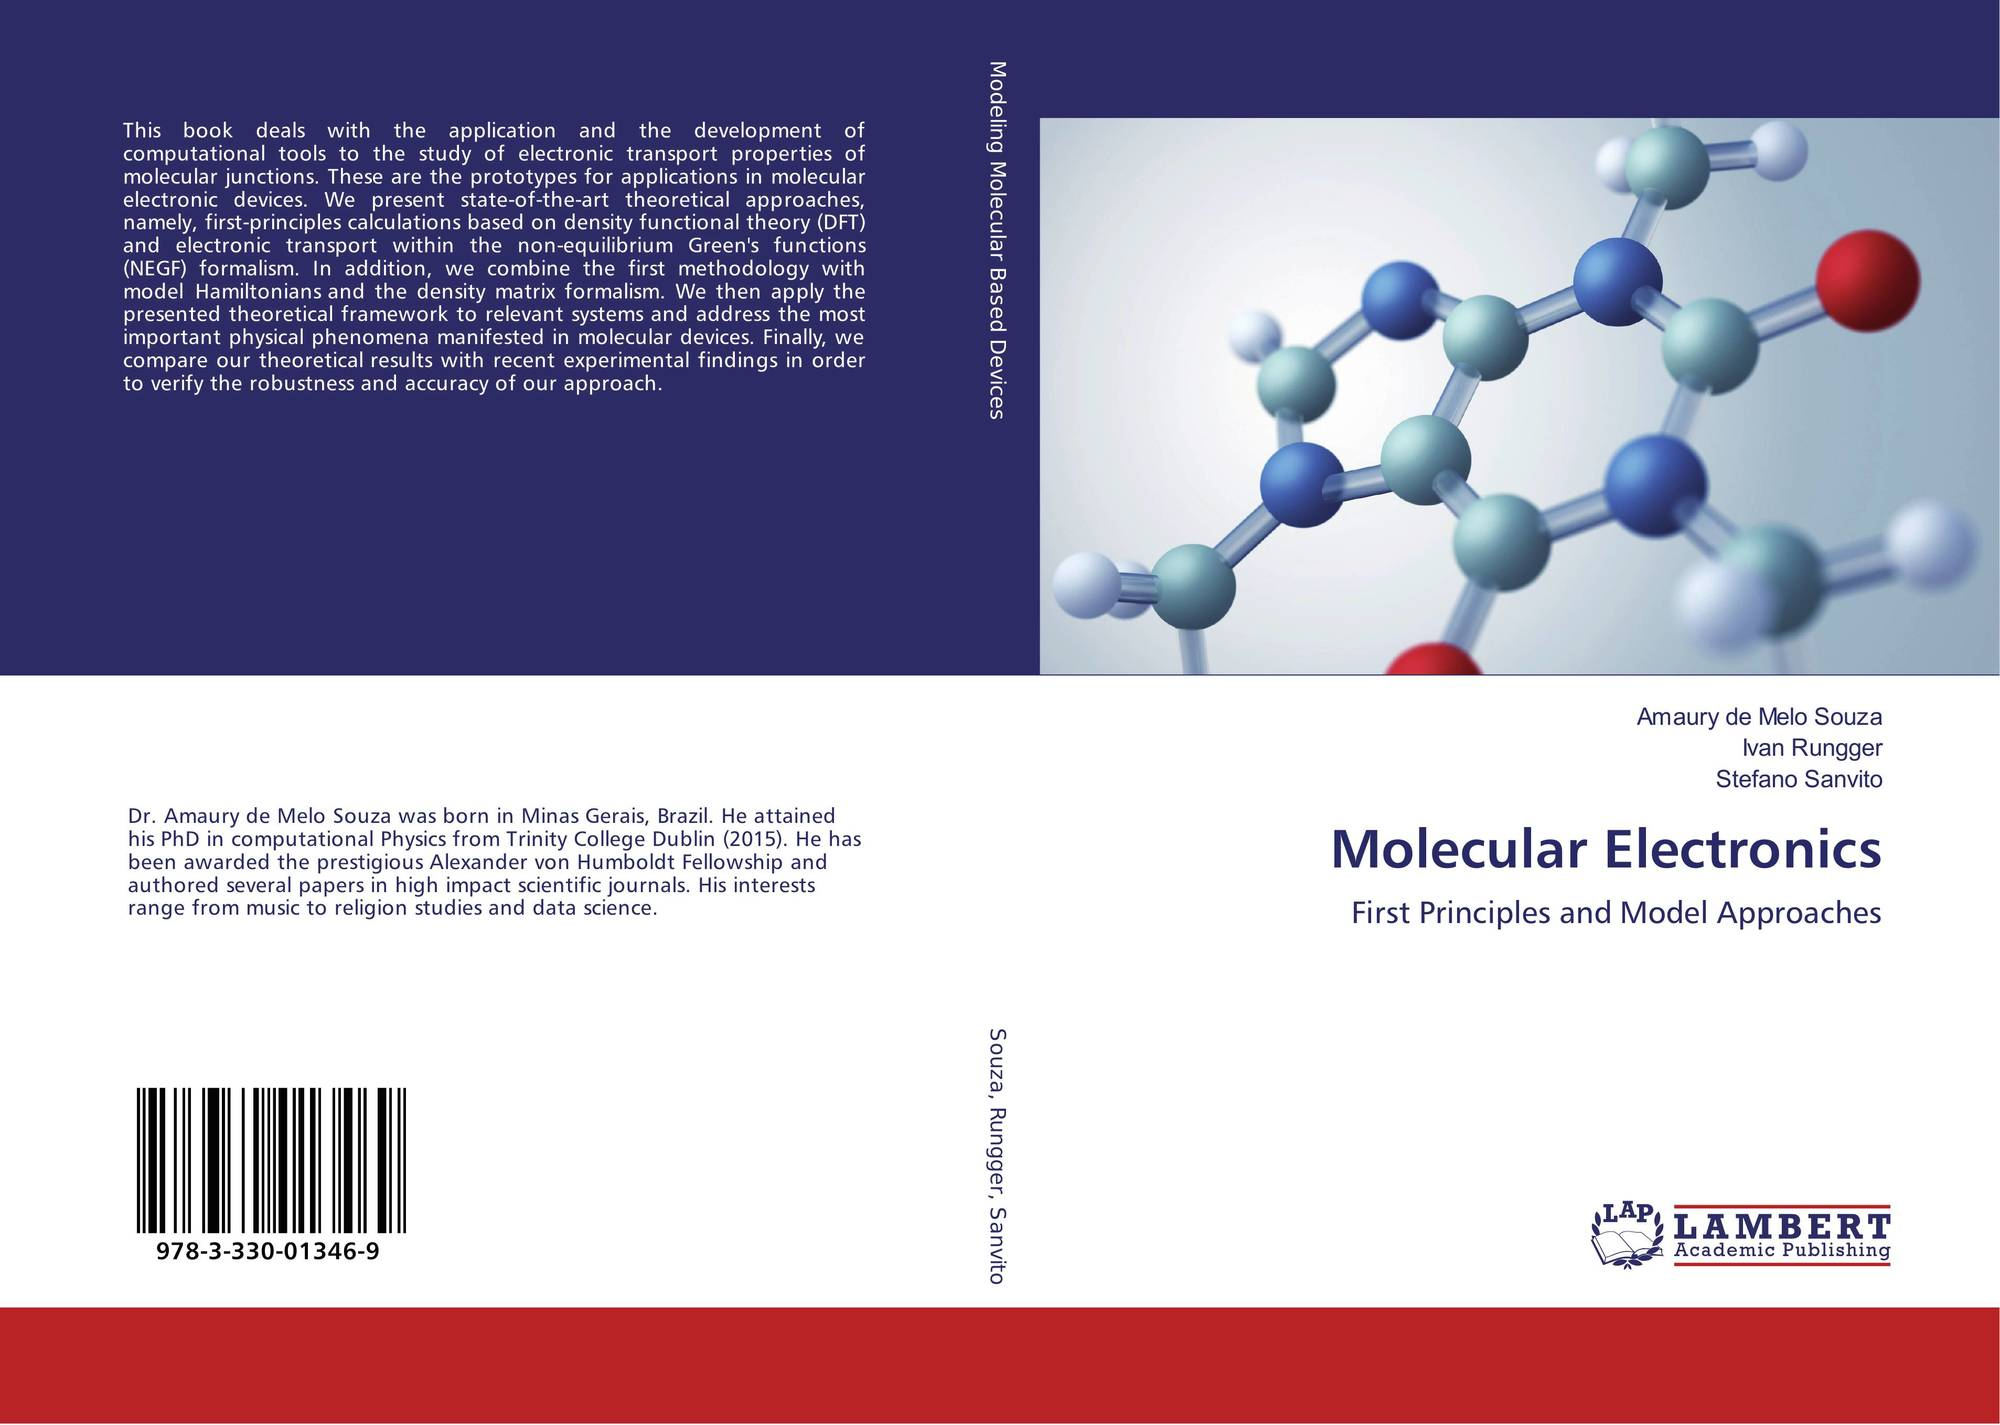 molecular electronics The course introduces the conductance properties of molecular systems, quantum systems in nature, and state-of-the-art research on this topic there is an emphasis on metal/single-molecule/metal junctions, but organic film devices are also treated.